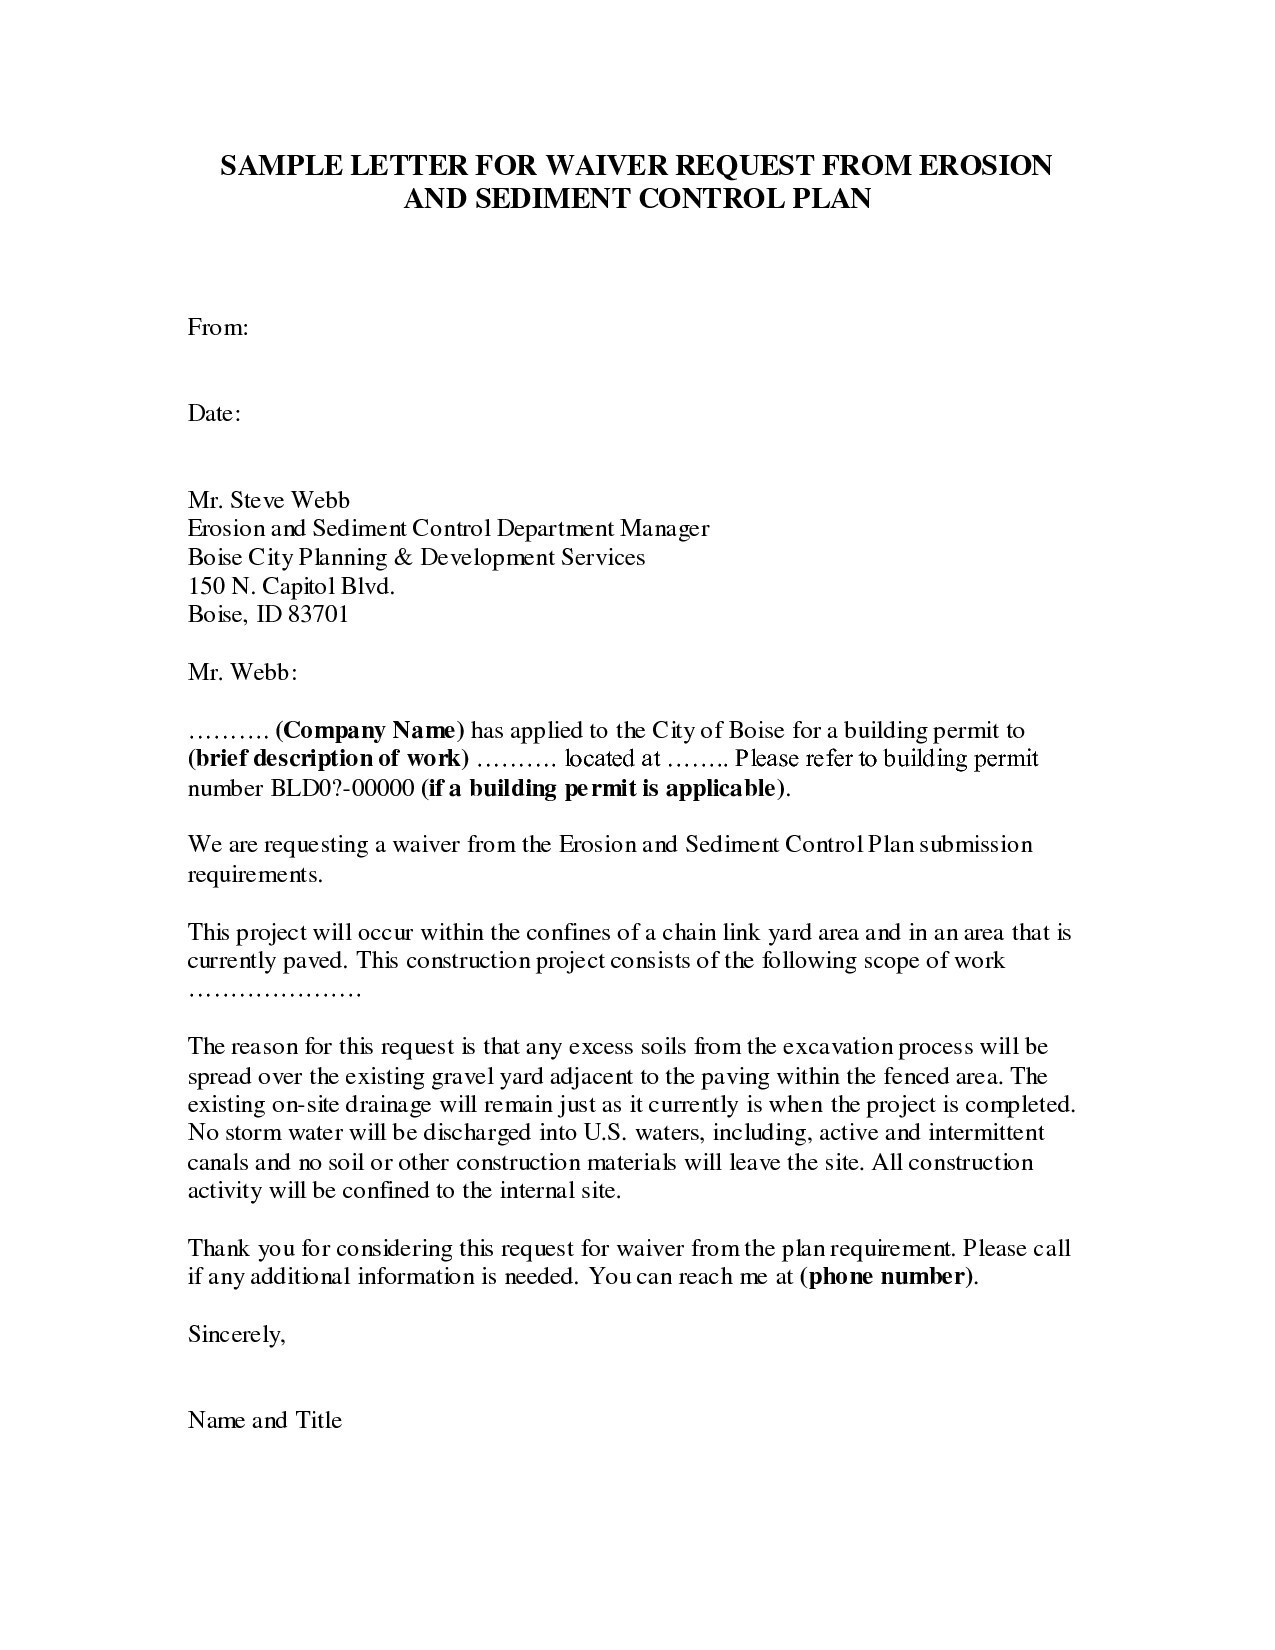 termination letter template example-Sample A Job Termination Letter Valid Sample Waiver Letter Luxury Group Lots 0a 0b 0c 8-e